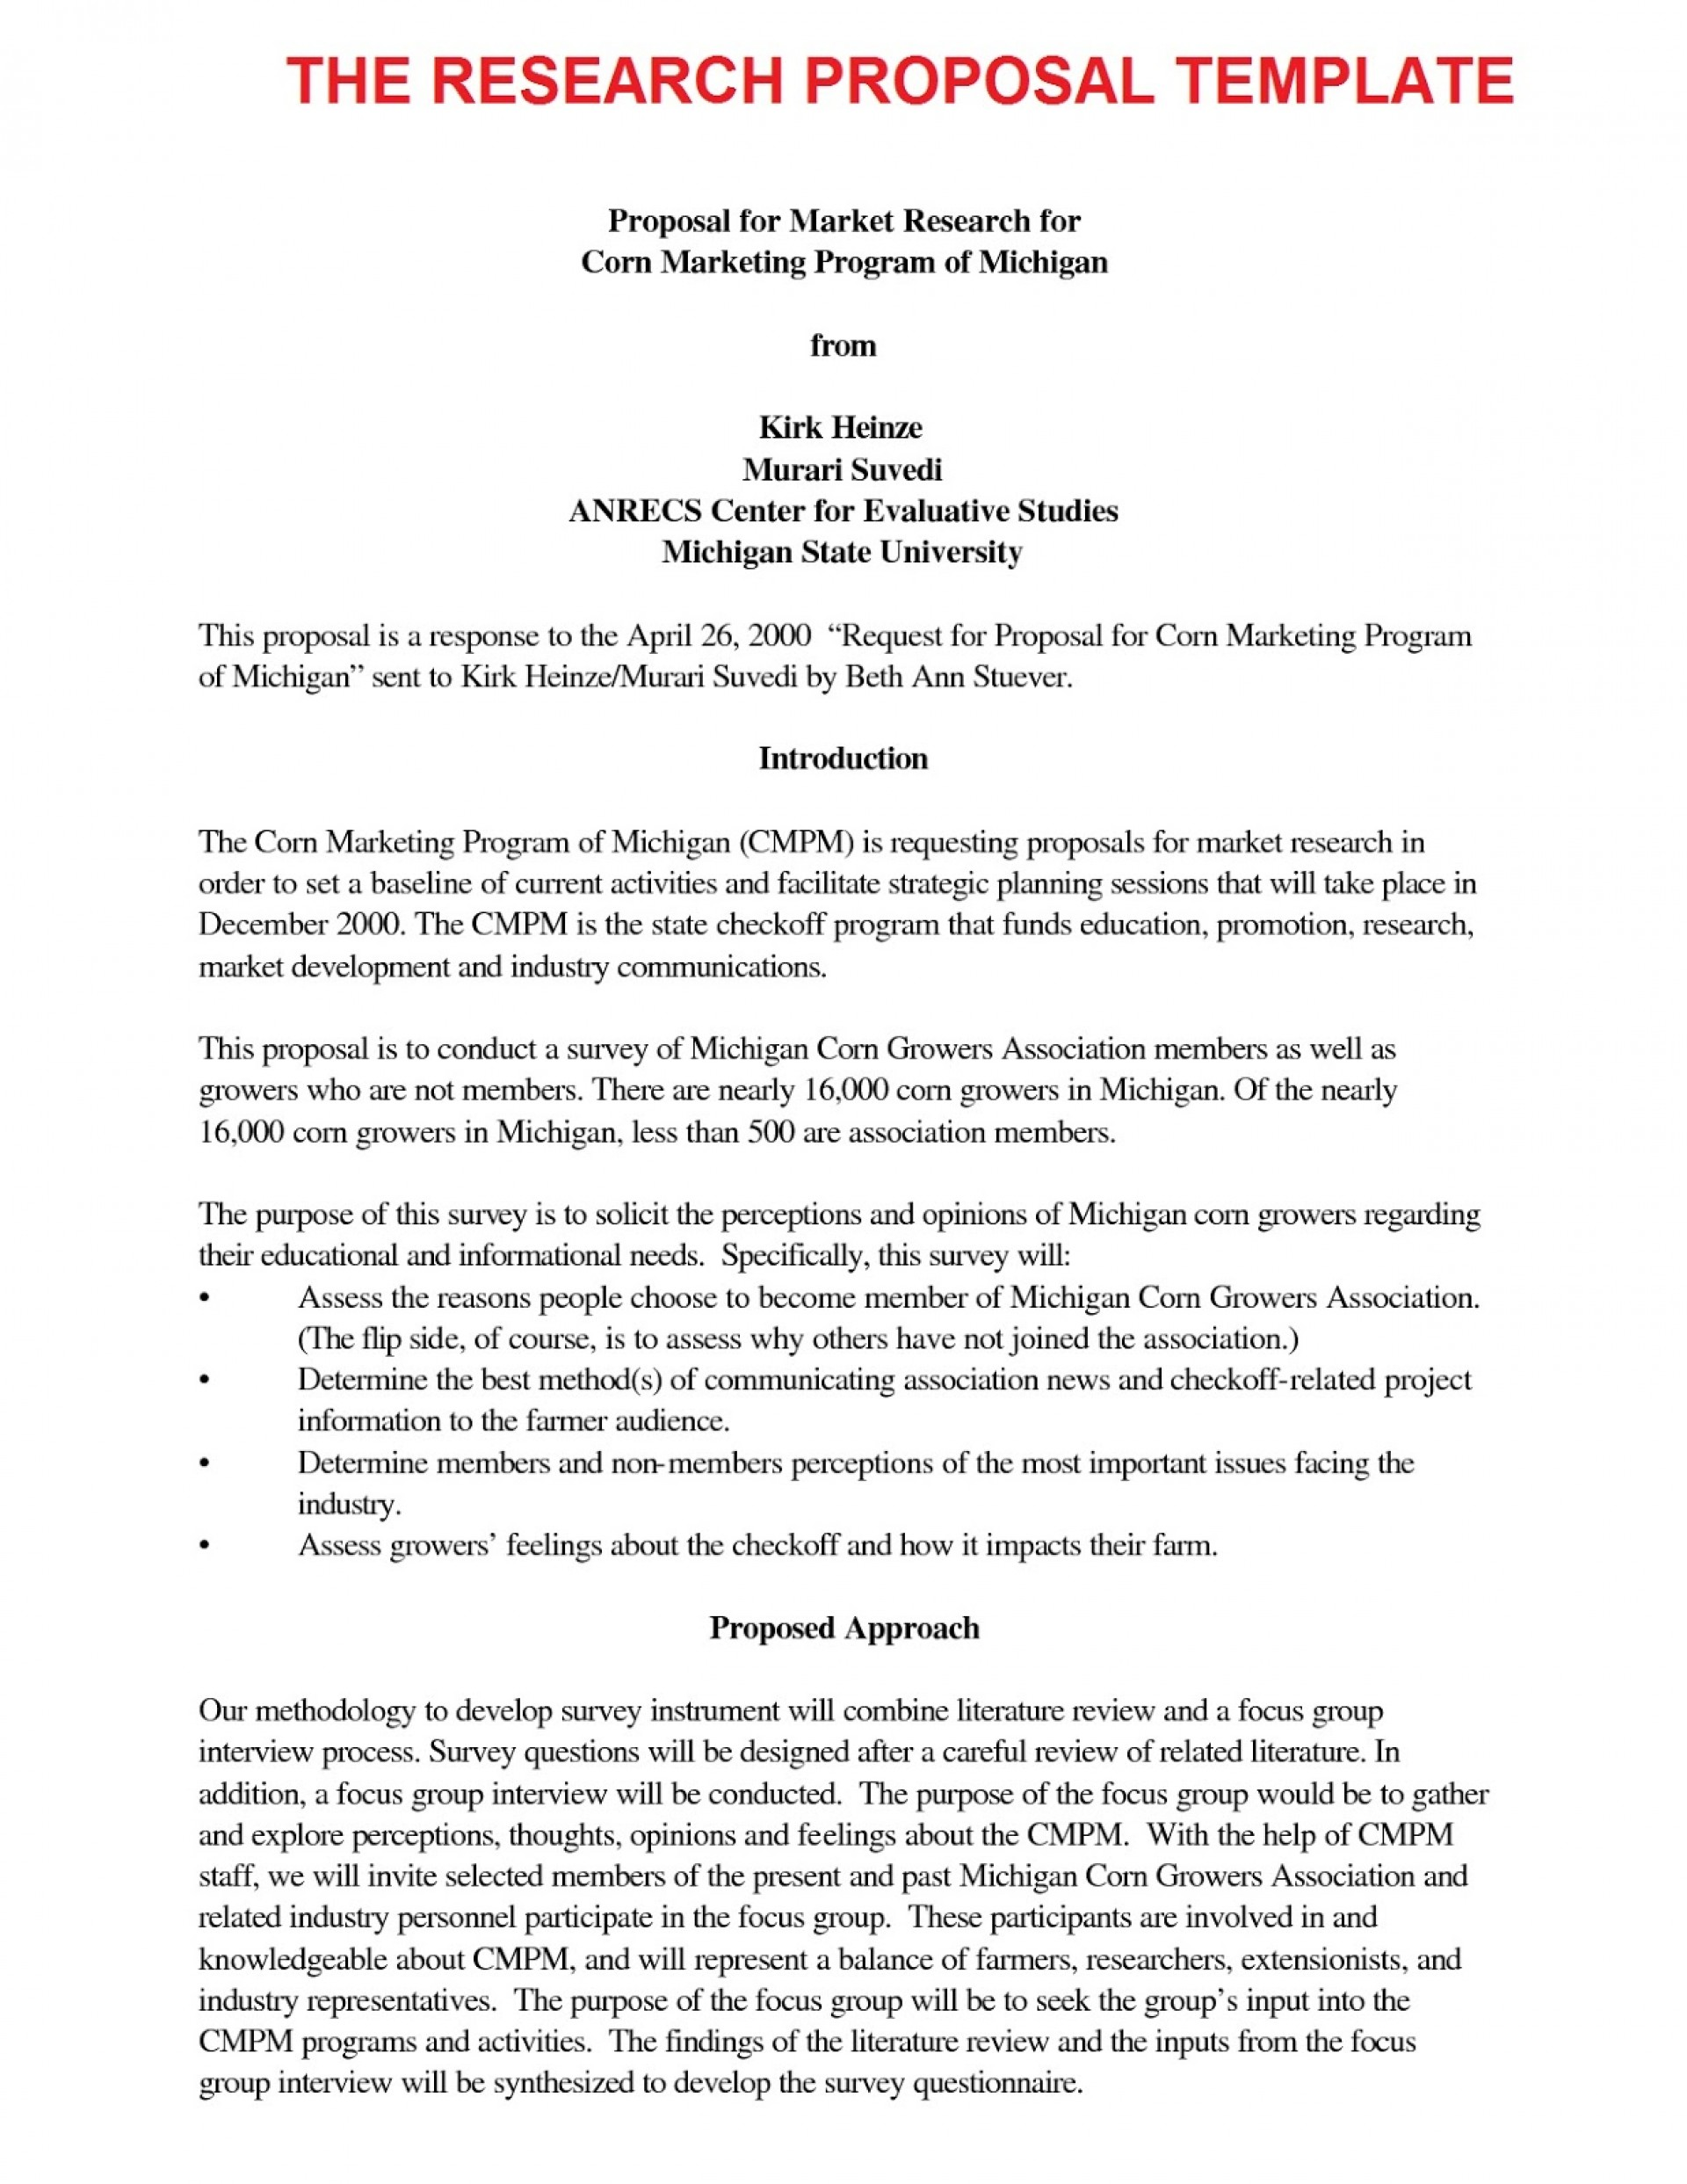 018 Research252520proposal252520template Essay Example How To Write Phenomenal A 5 Page Is It Possible In One Night Research Paper Outline 1920